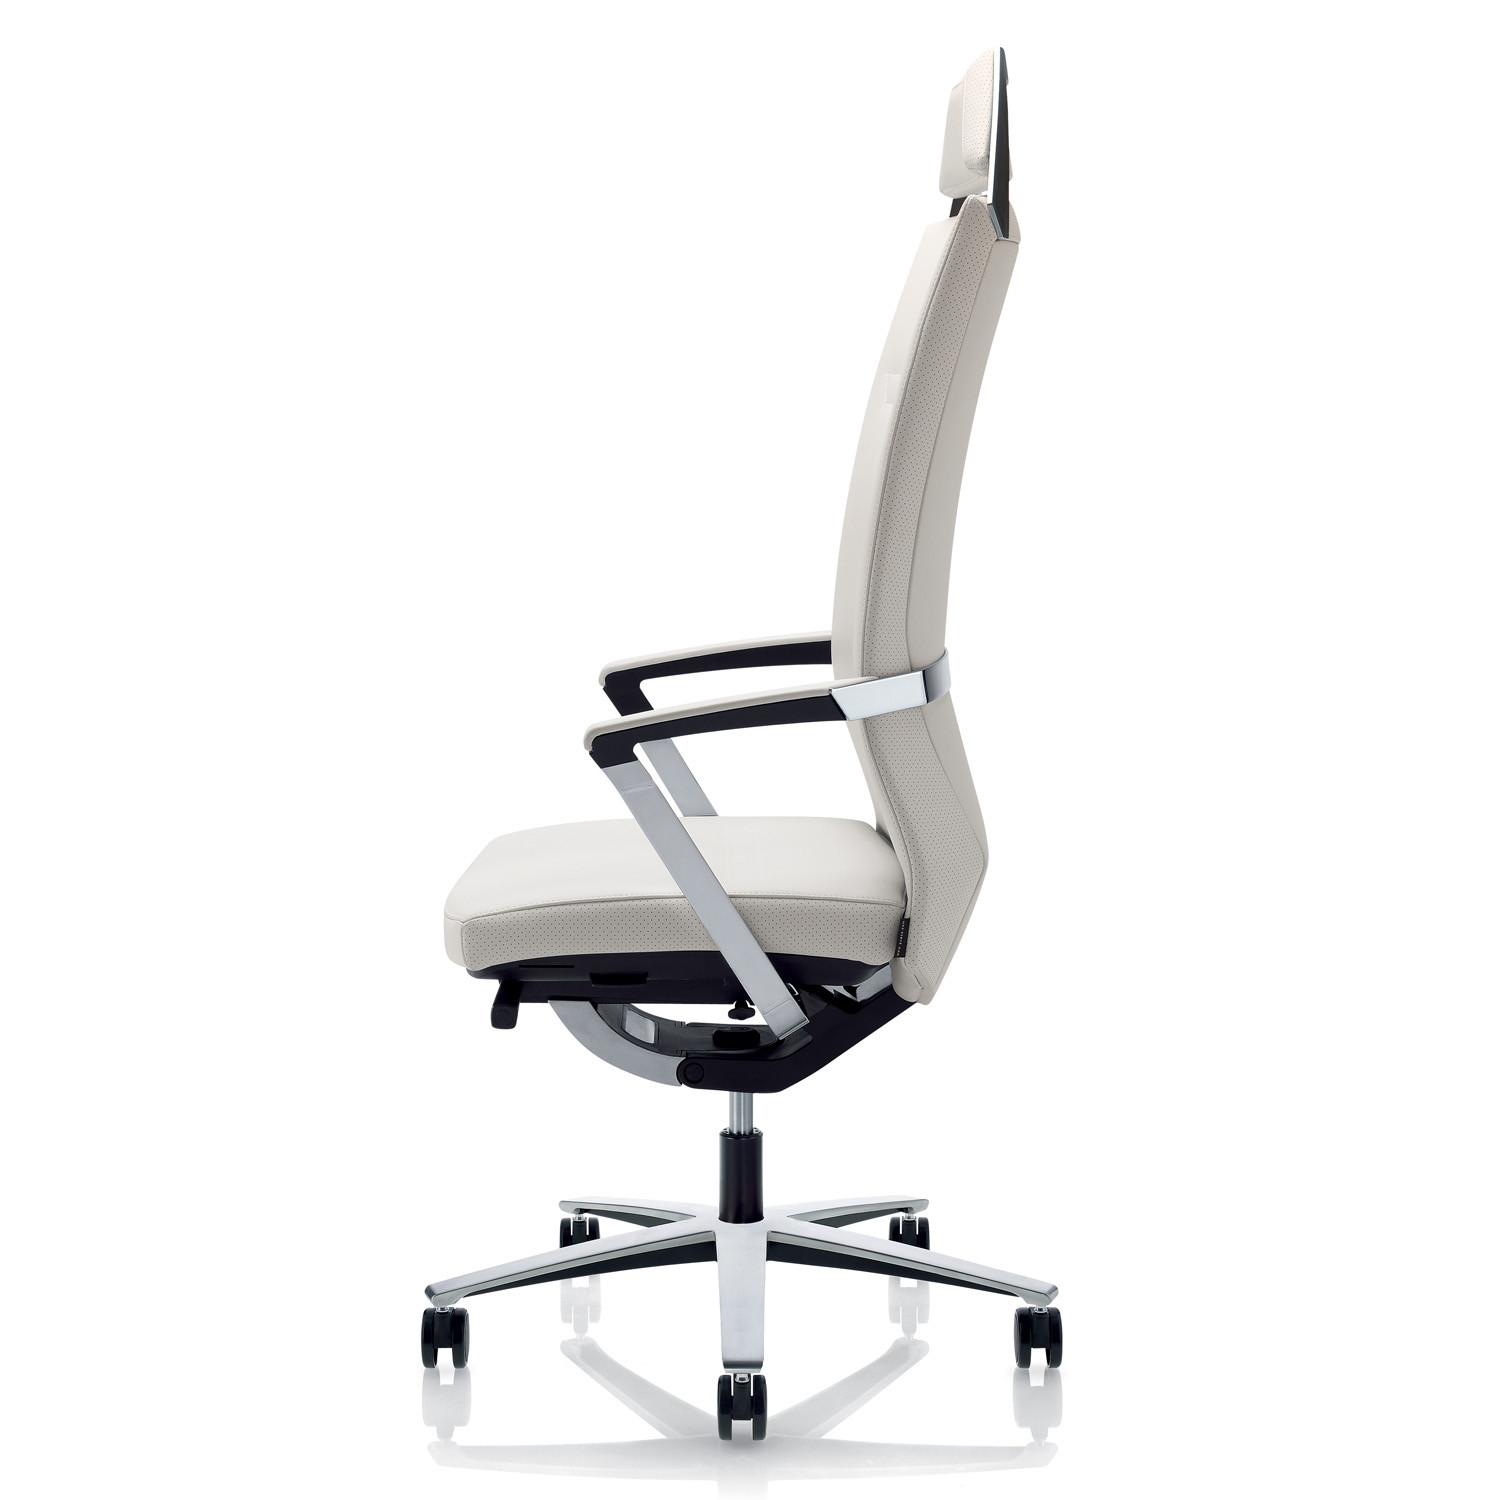 DucaRE Executive Swivel Chair by Zuco